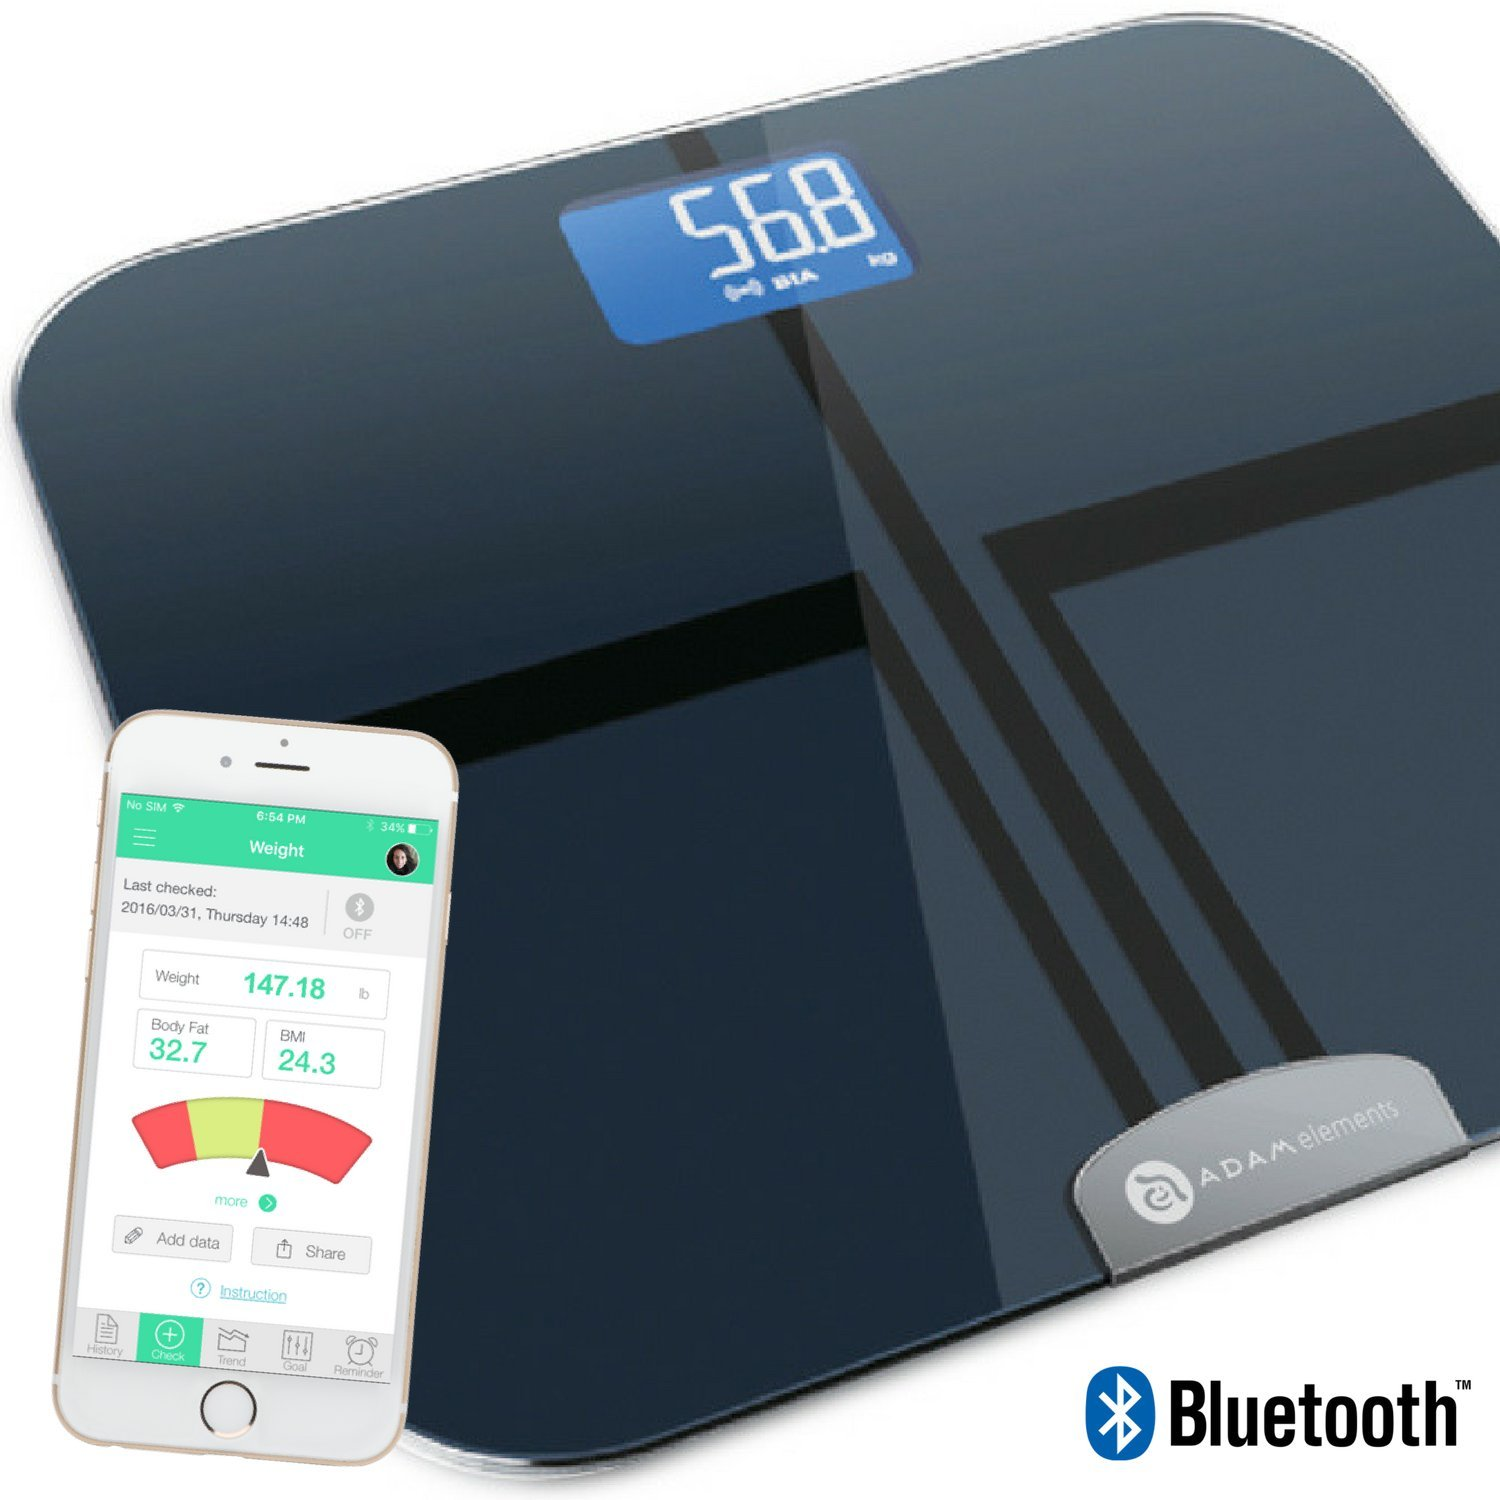 A ADAM ELEMENTS Smart Scale Digital Weight and Body Fat Composition Analyzer with Smartphone App